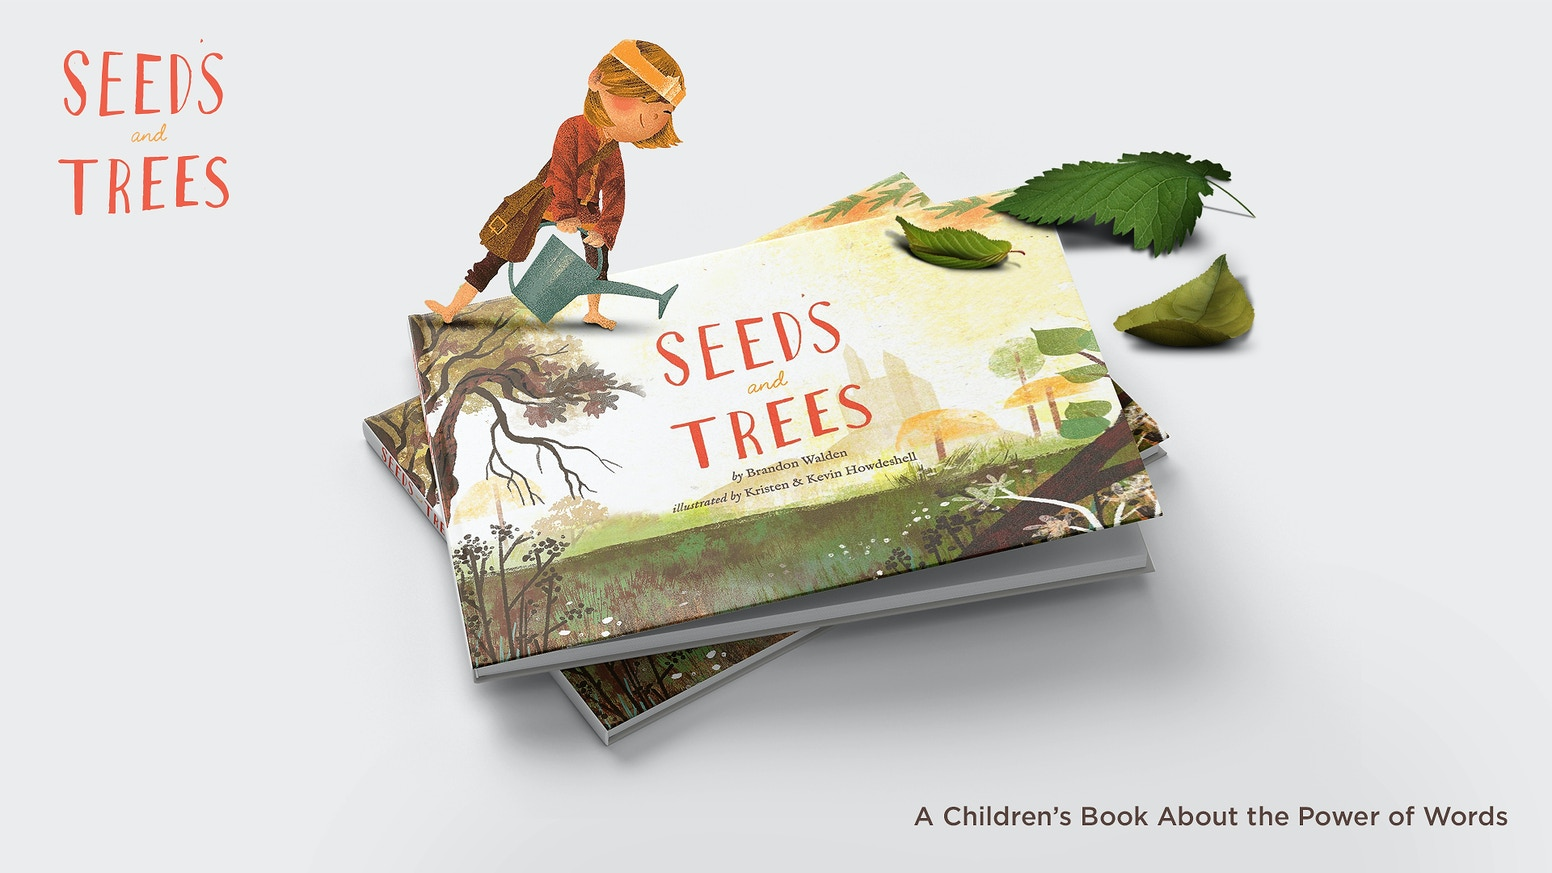 """Seeds and Trees is a story about the power of words (seeds). """"Be careful what you water, for it will surely grow."""""""